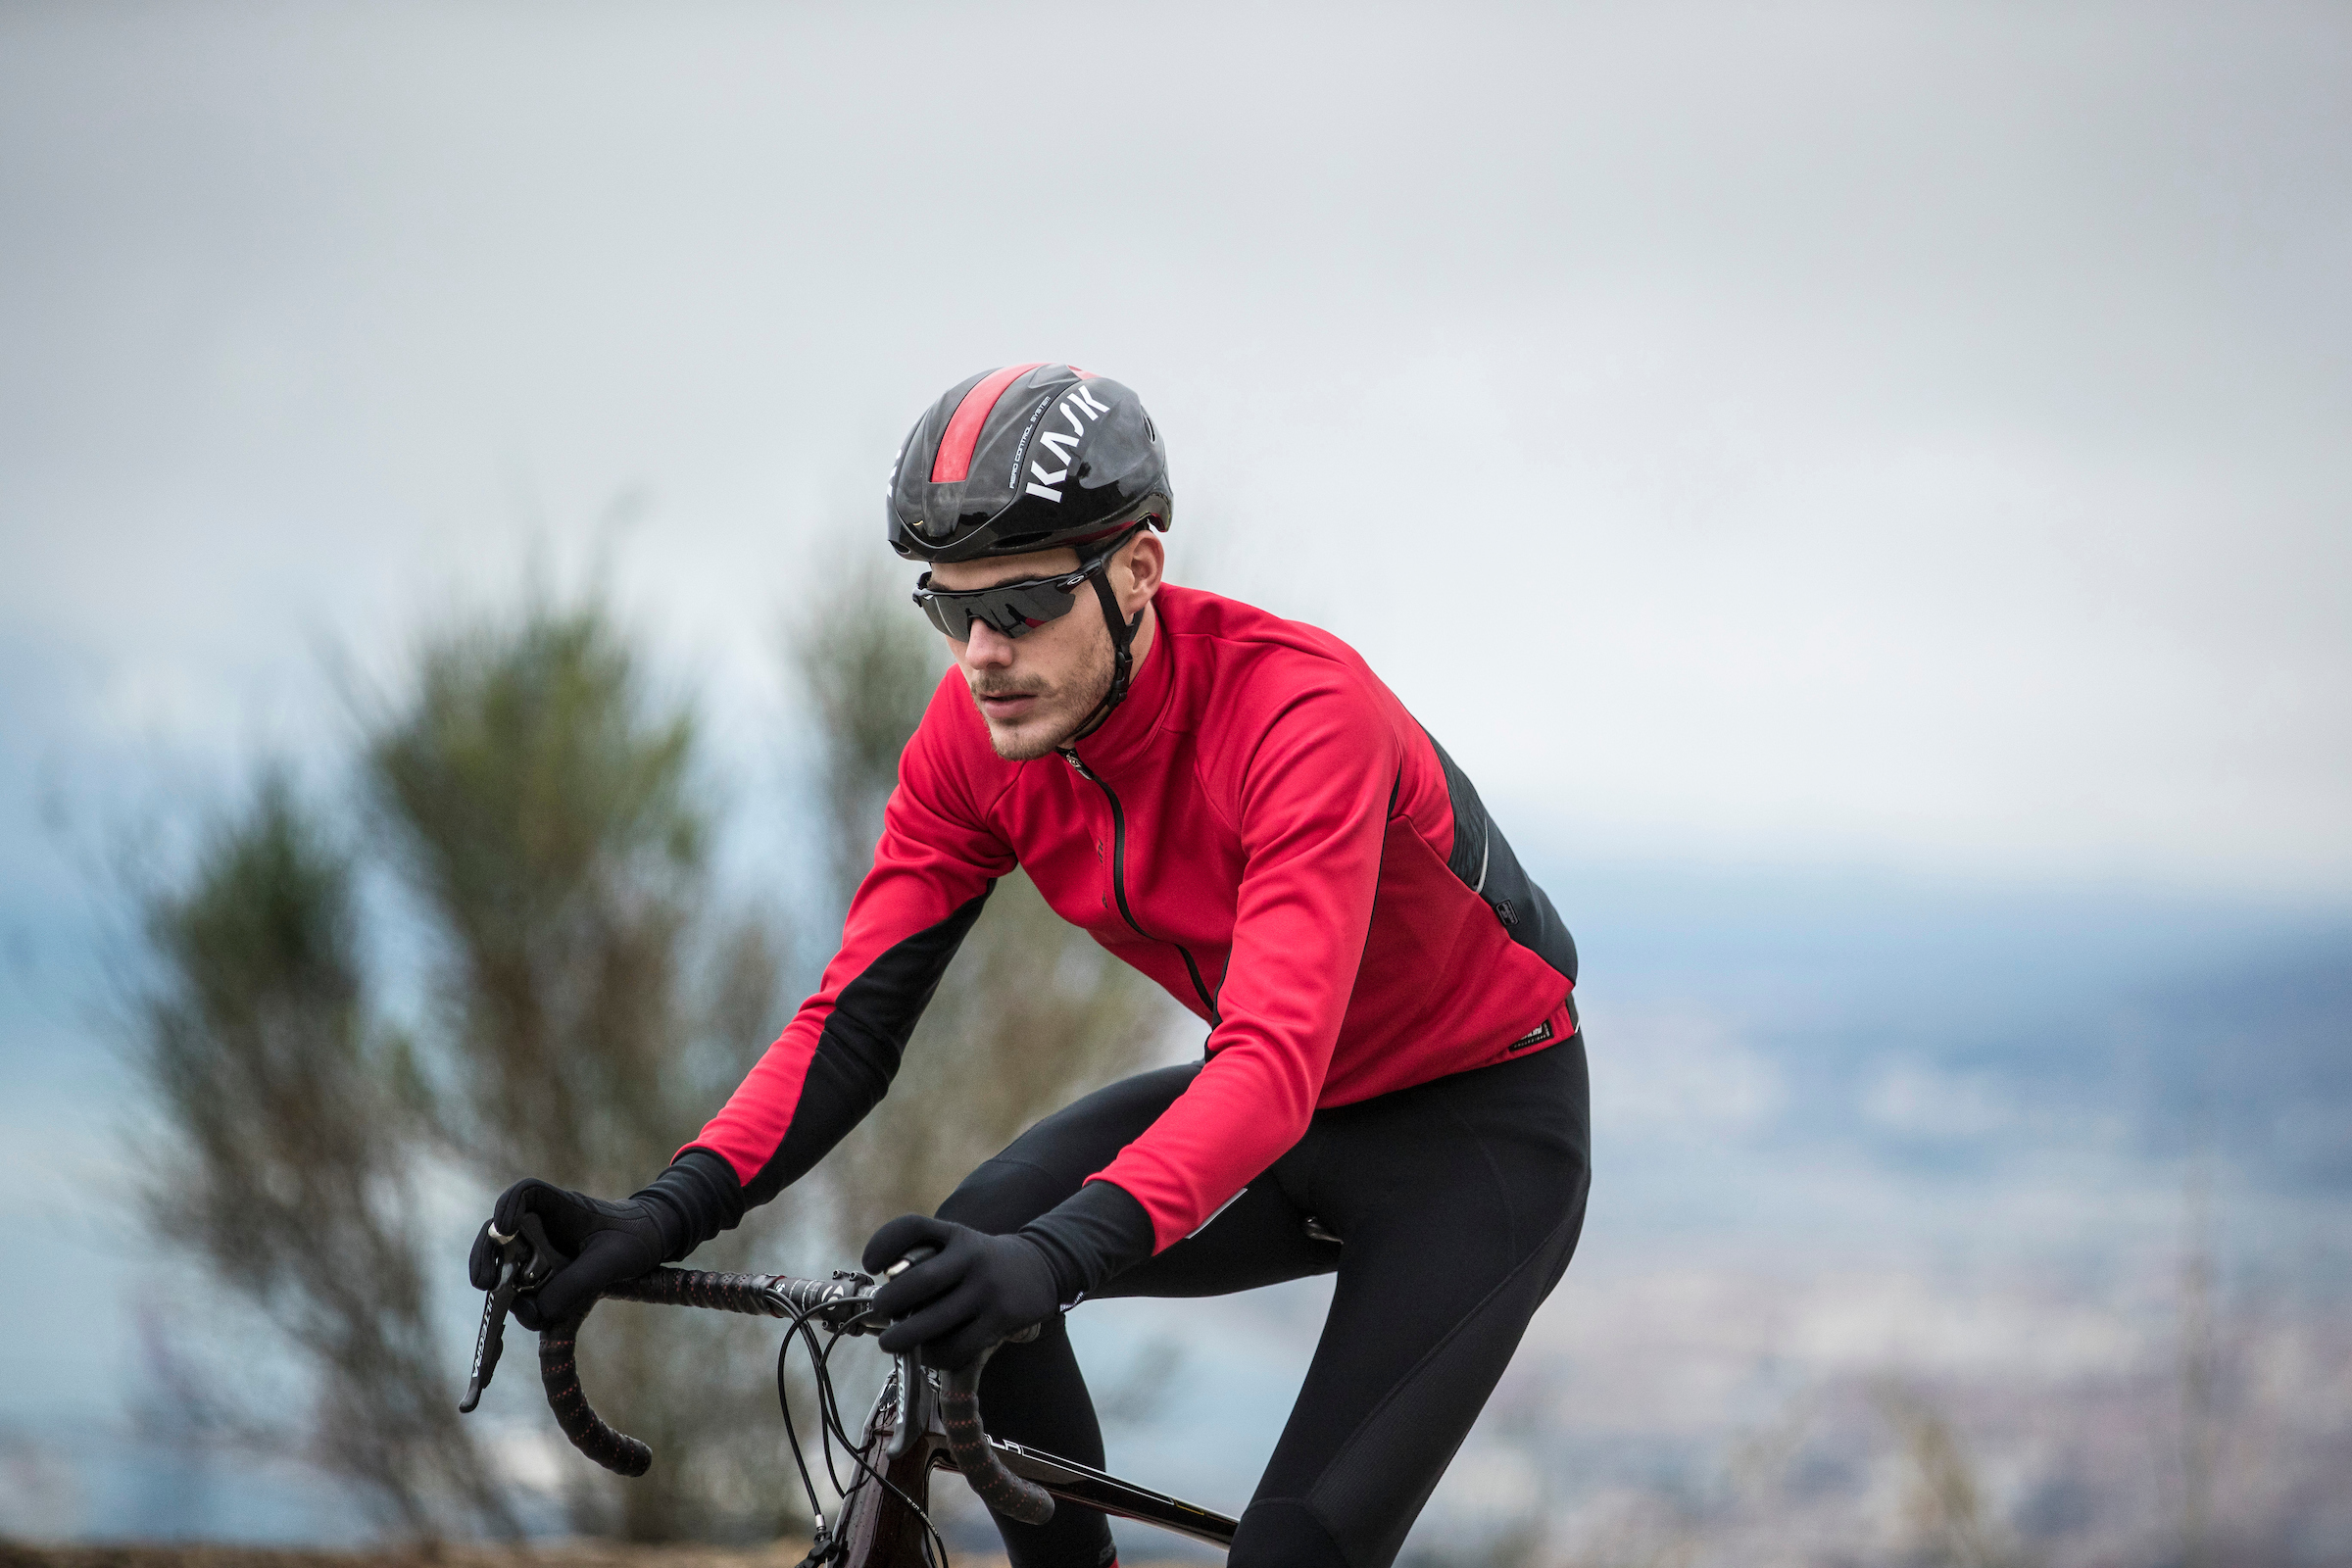 A cyclist wearing the Santini Cycling Beta jacket